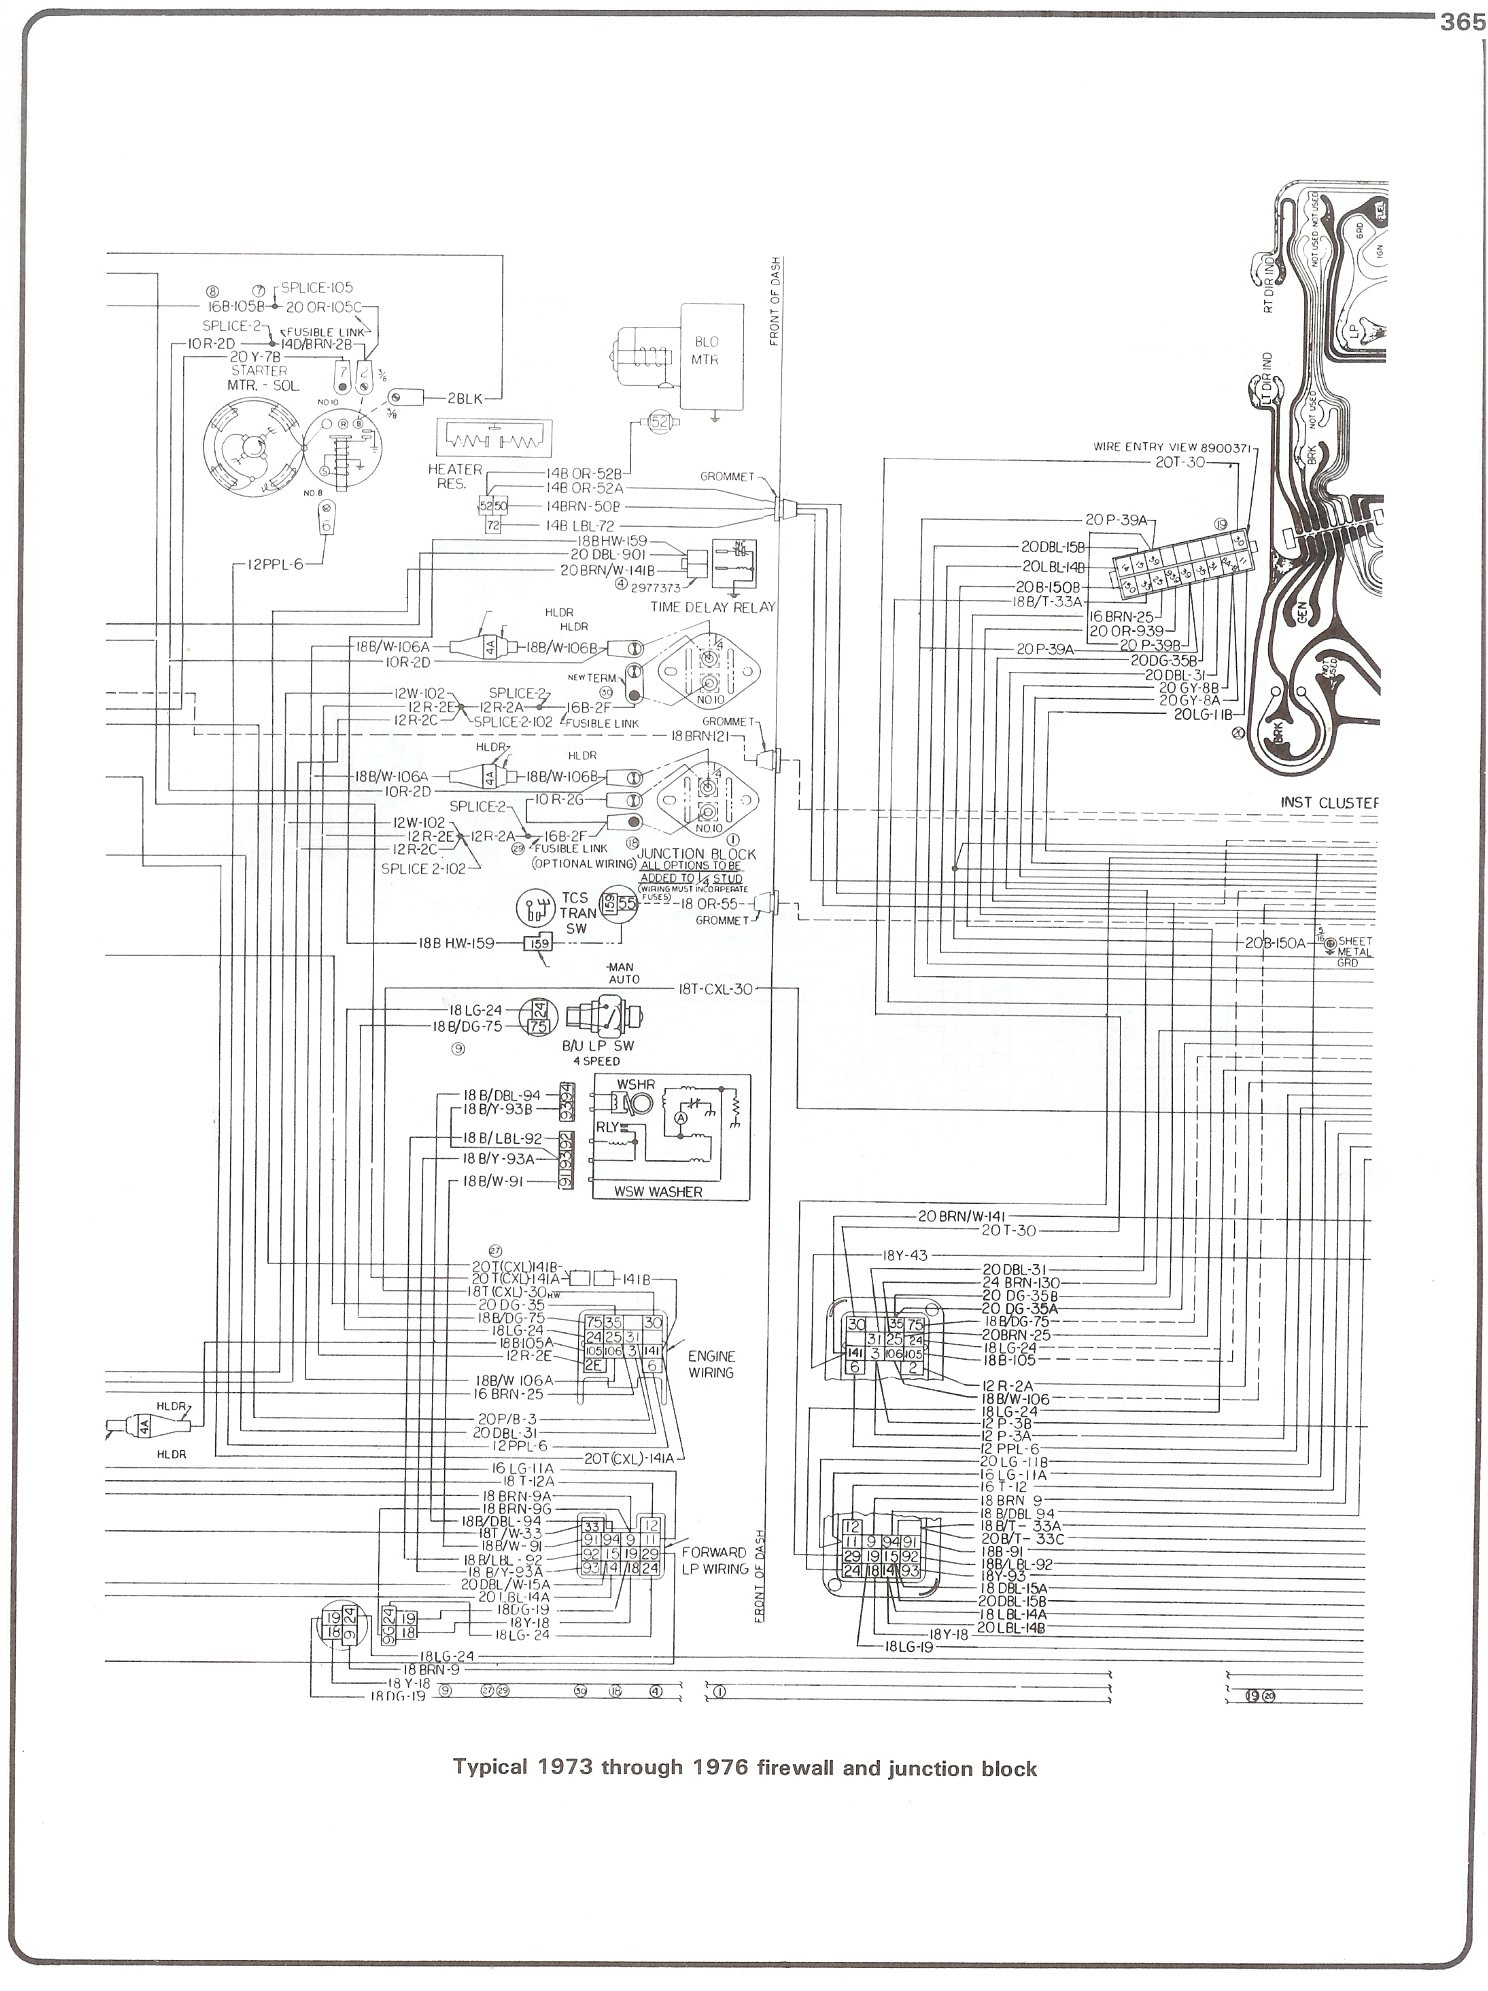 73 76_firewall_junct complete 73 87 wiring diagrams 1984 chevy c10 fusebox diagram at cos-gaming.co